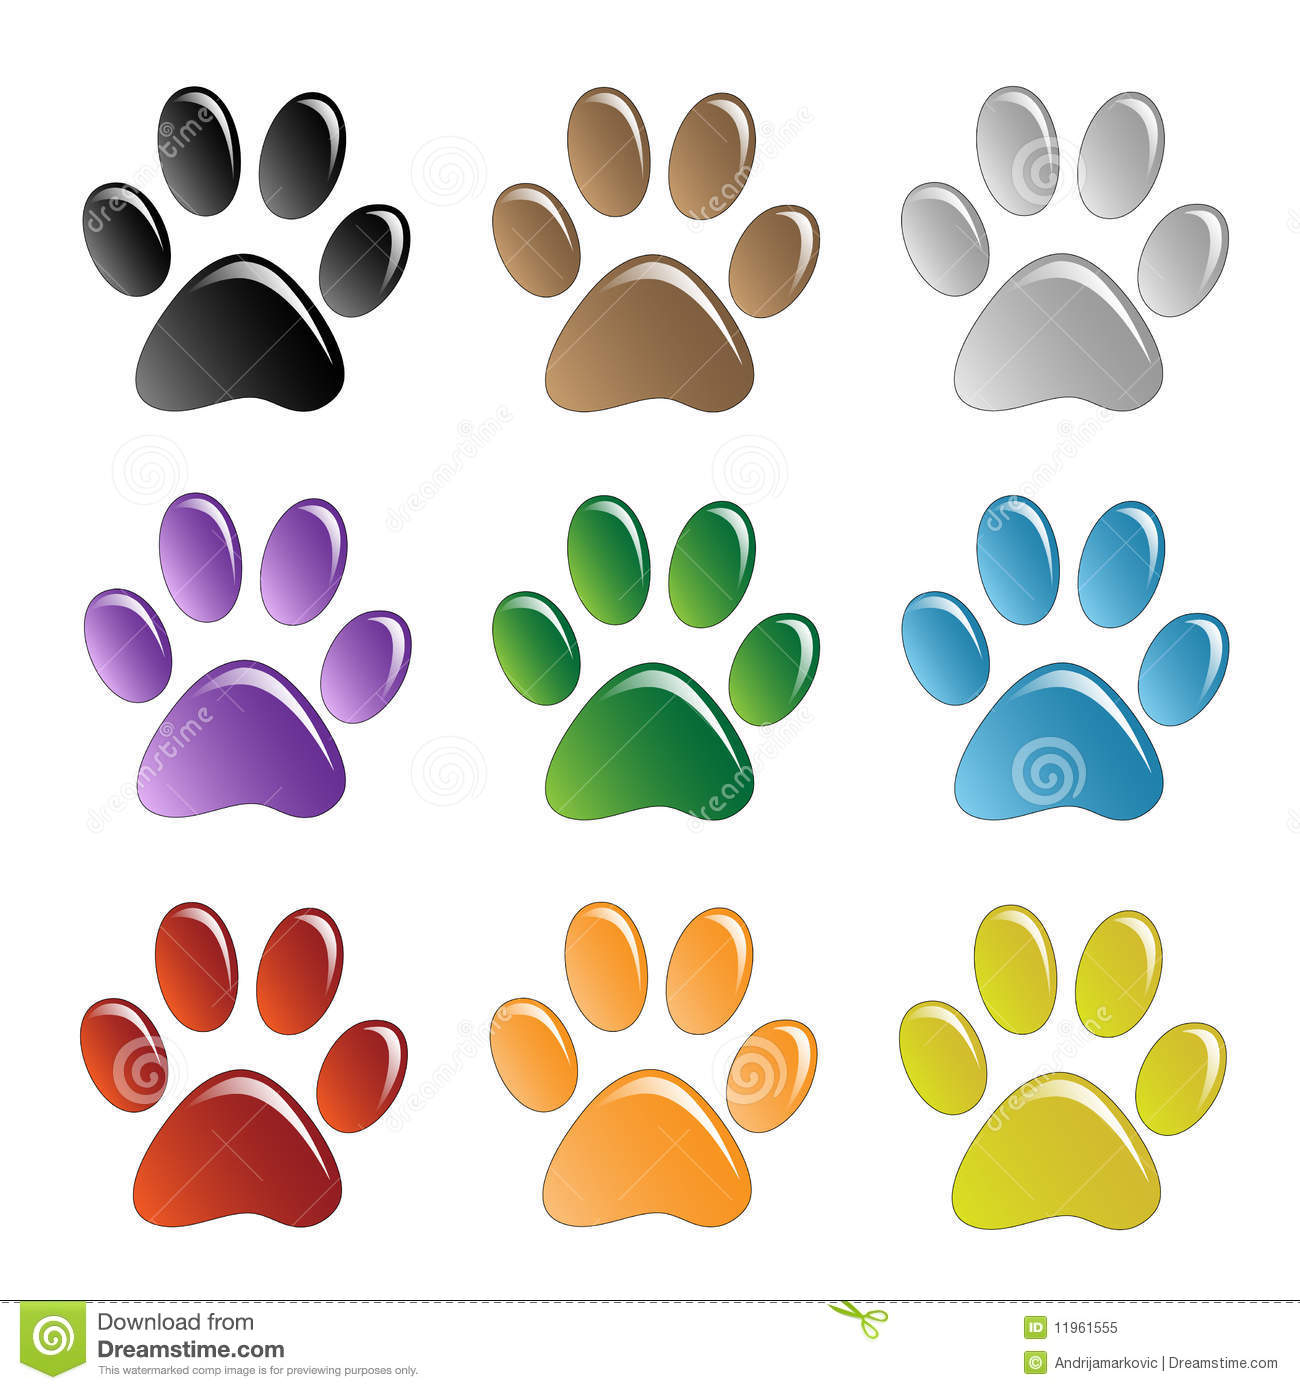 Paw Prints Royalty Free Stock Photo - Image: 11961555